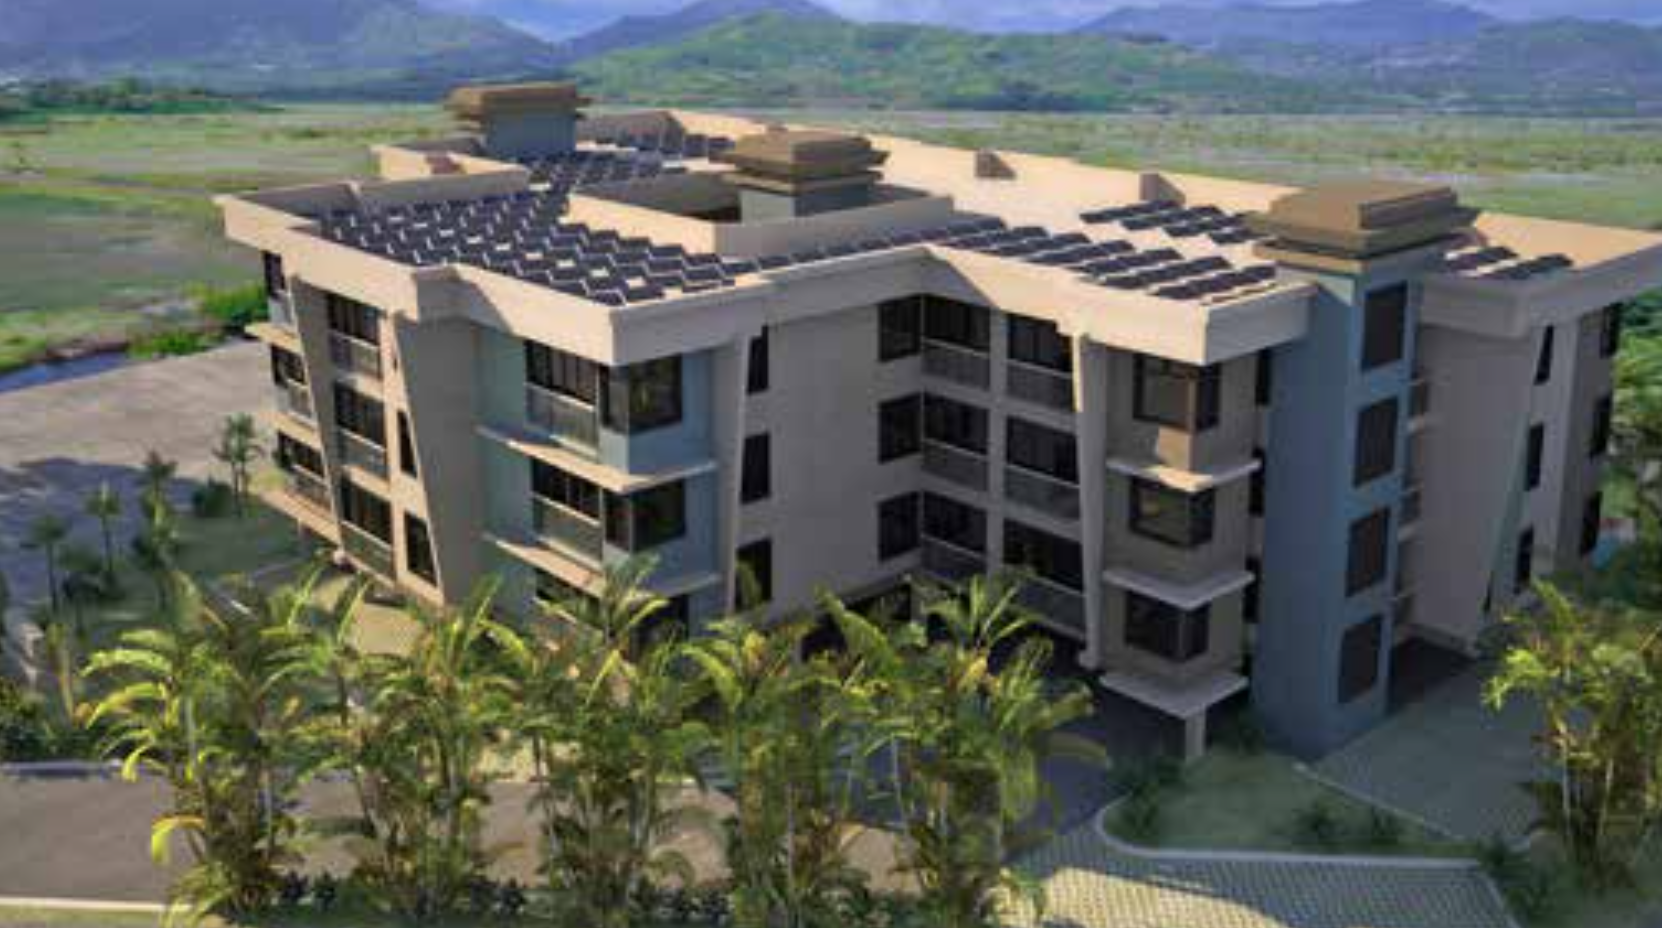 Kihapai Condo Project - Brand new multifamily condominium project in highly sought-after town of Kailua on the islandof Oahu. Two and three bedroom condo configurations boasting up to 600 square feet of living space featuring quality design and sustainable materials.